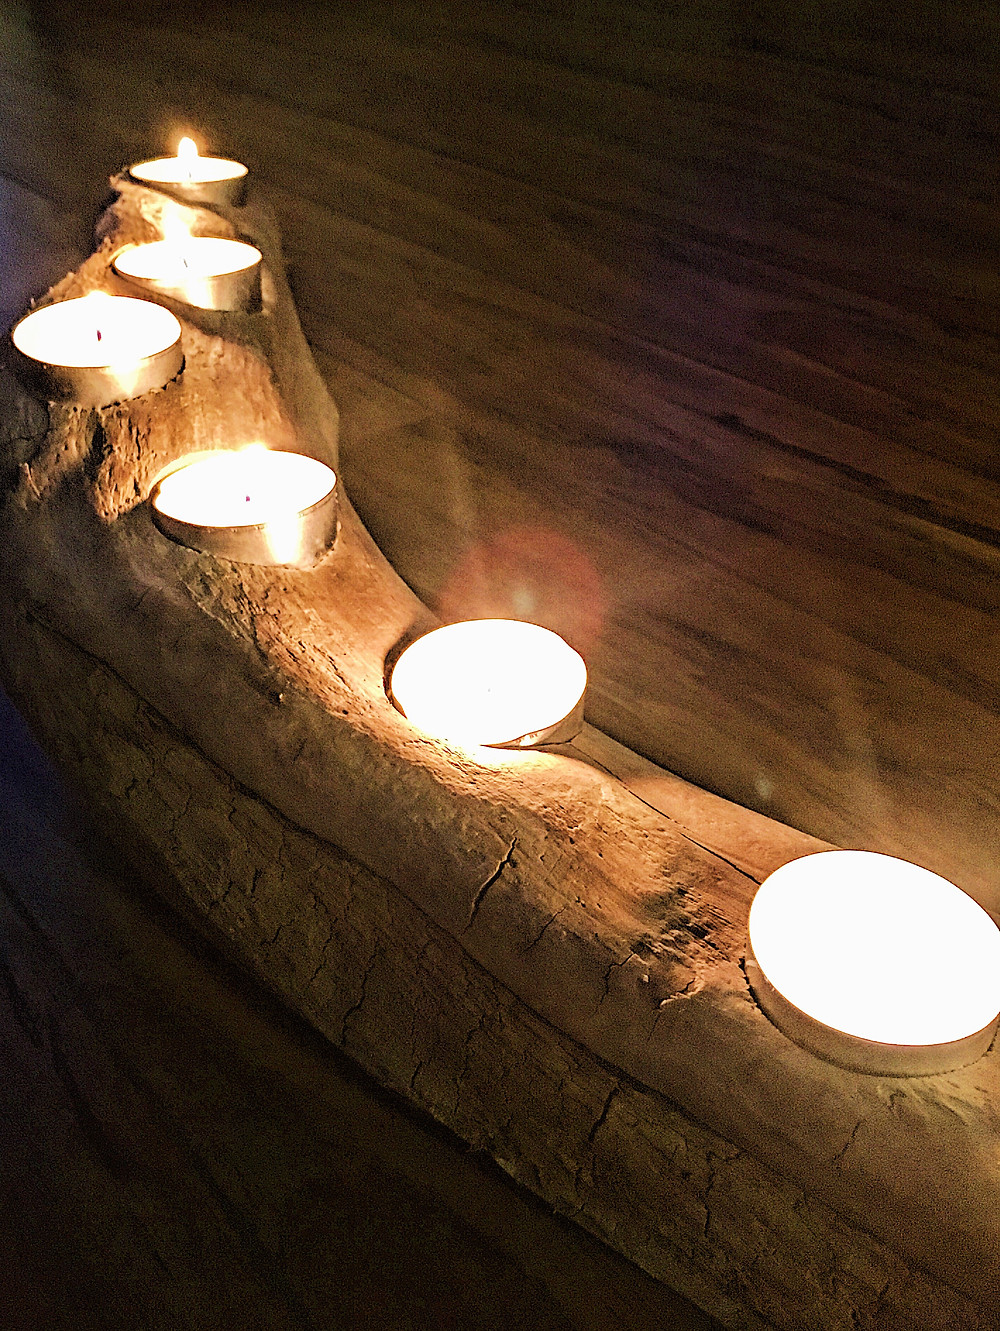 Beautiful driftwood candleholder